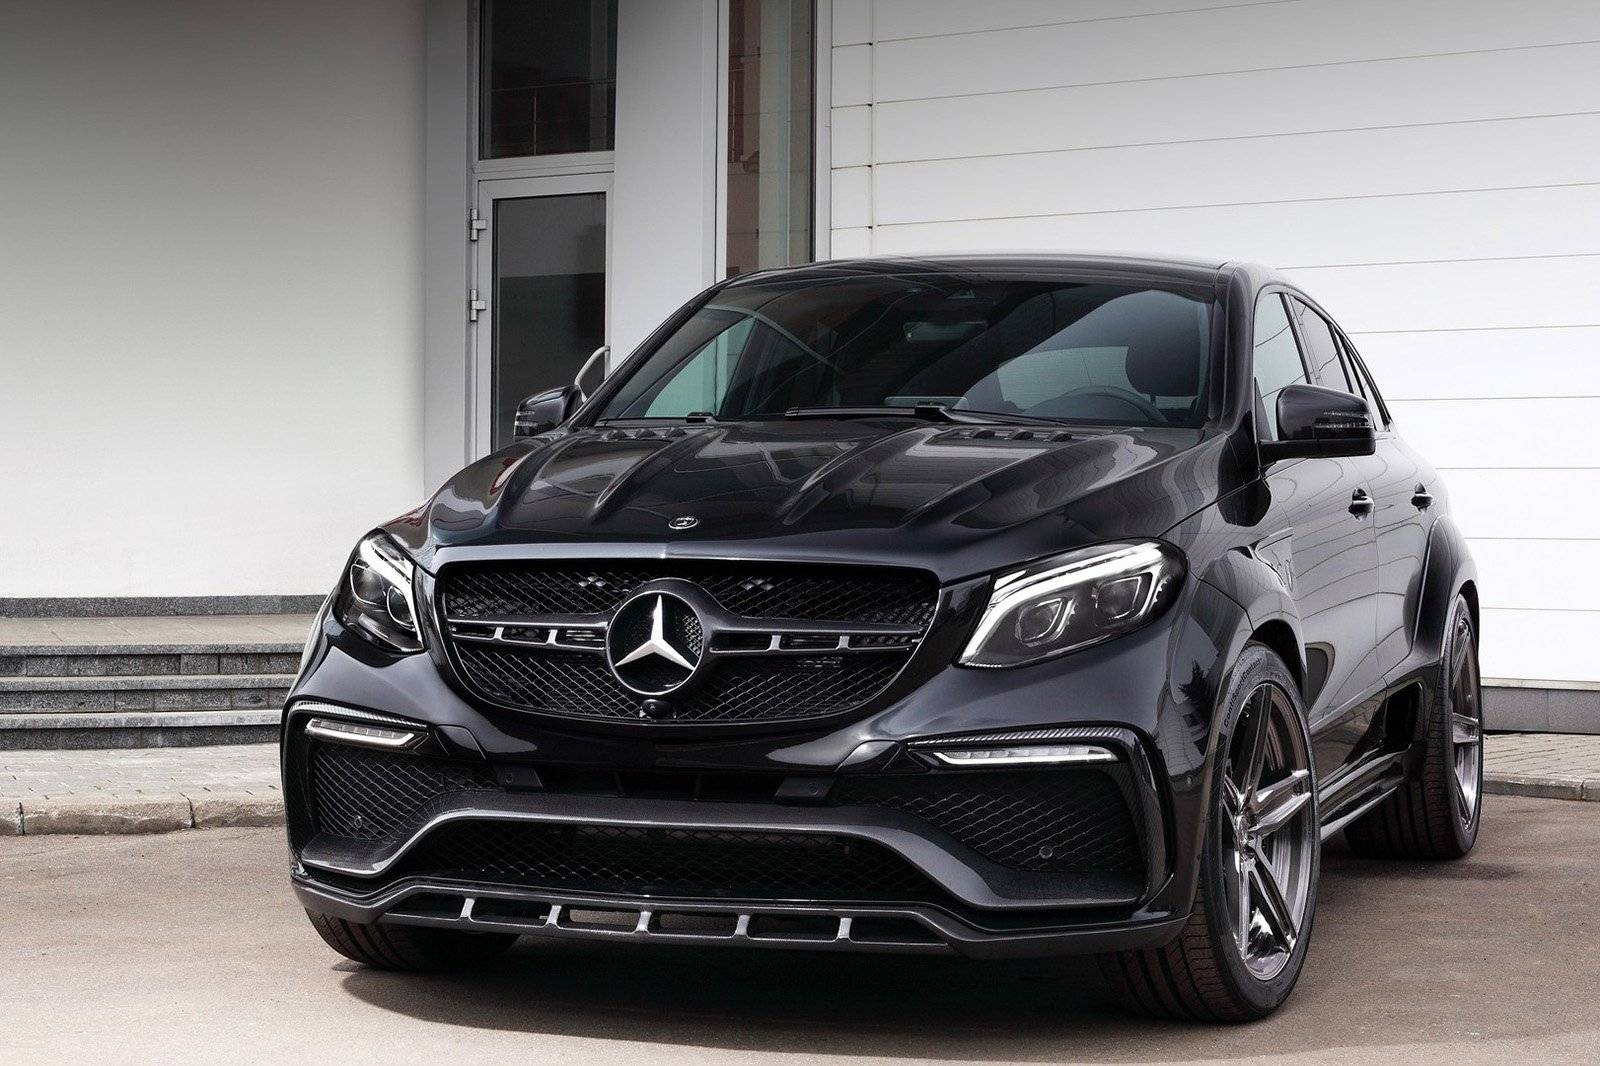 topcar vertimmert mercedes gle coup tuning styling. Black Bedroom Furniture Sets. Home Design Ideas